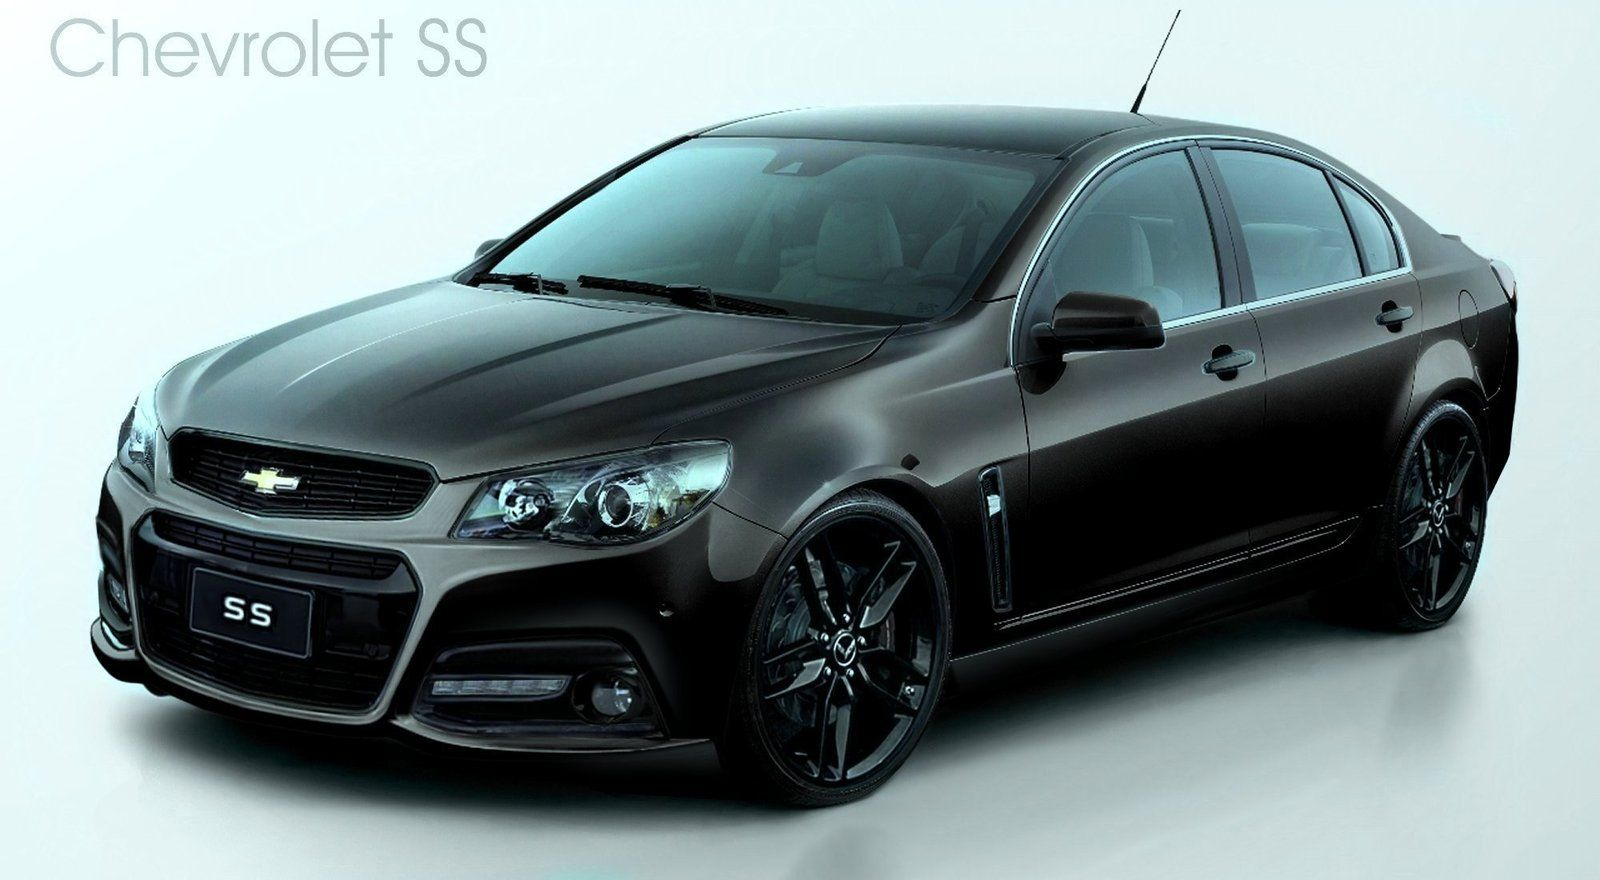 All Chevy chevy 2014 cars : 2014 chevy ss pictures | 2014 Chevrolet SS: Performance Sedan with ...